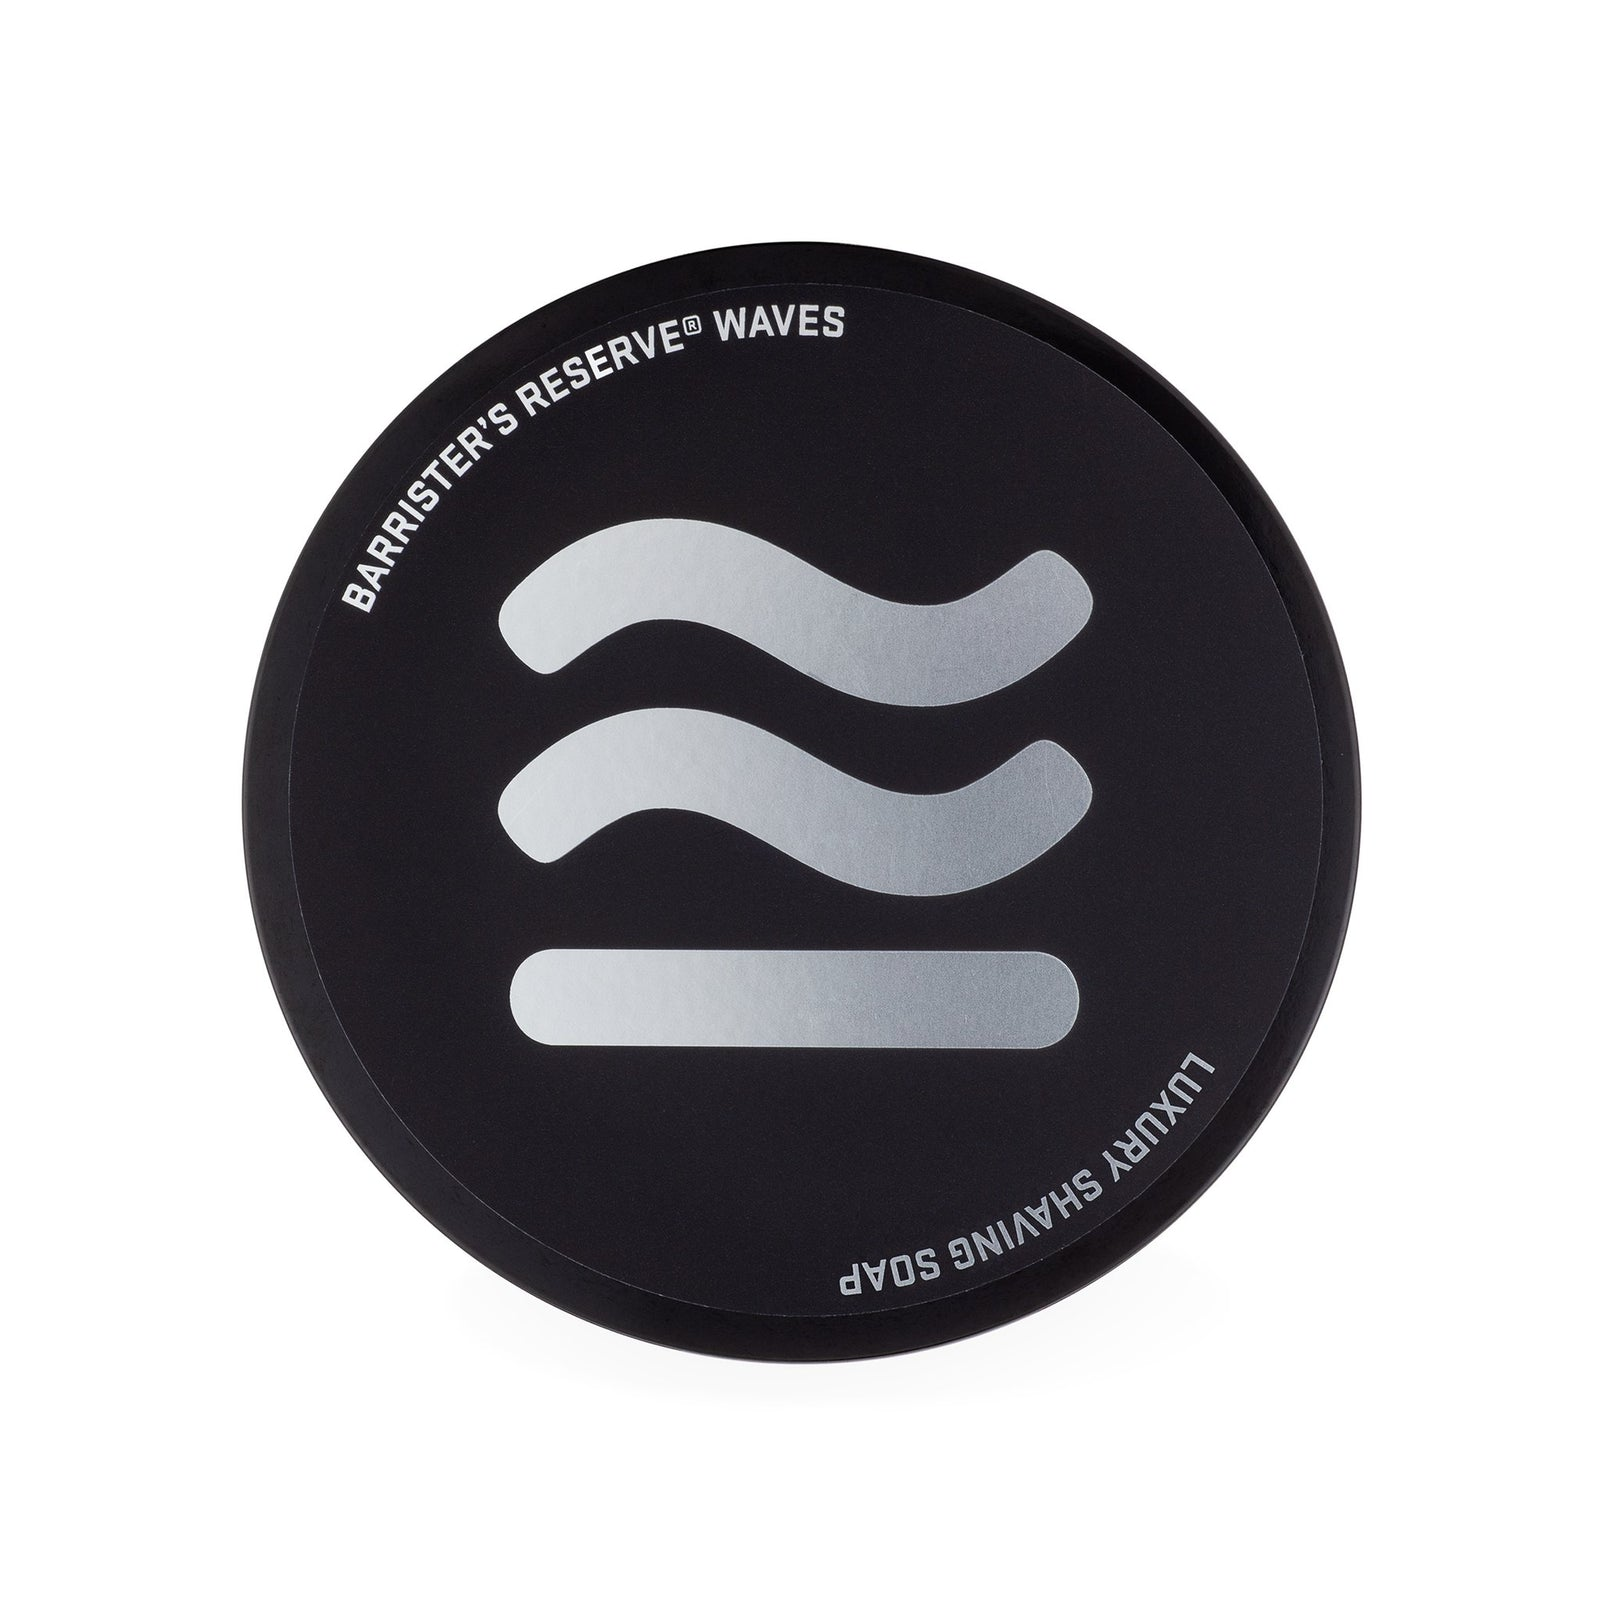 Barrister and Mann - Reserve Waves Shaving Soap